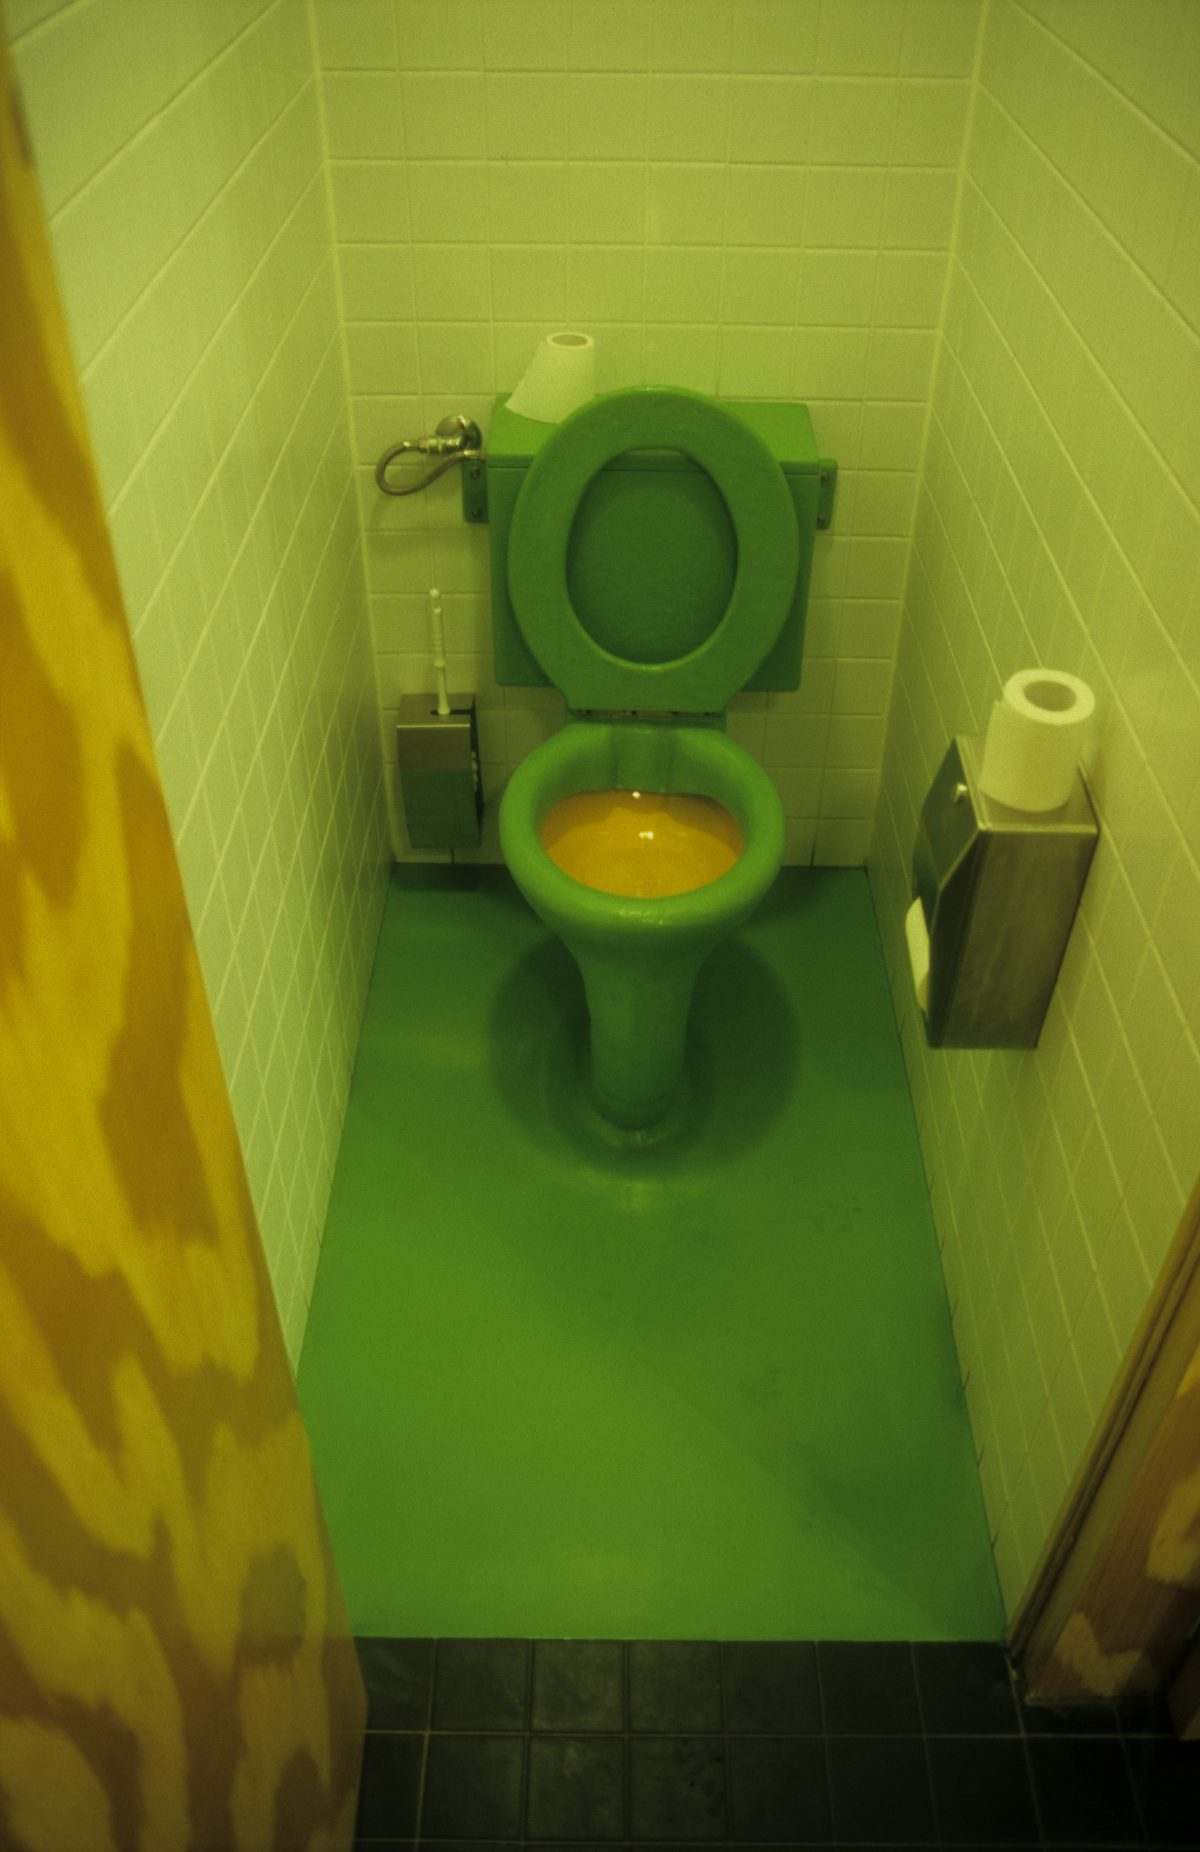 Vegetarian toilet - At Dick Bruna House, toilet, color